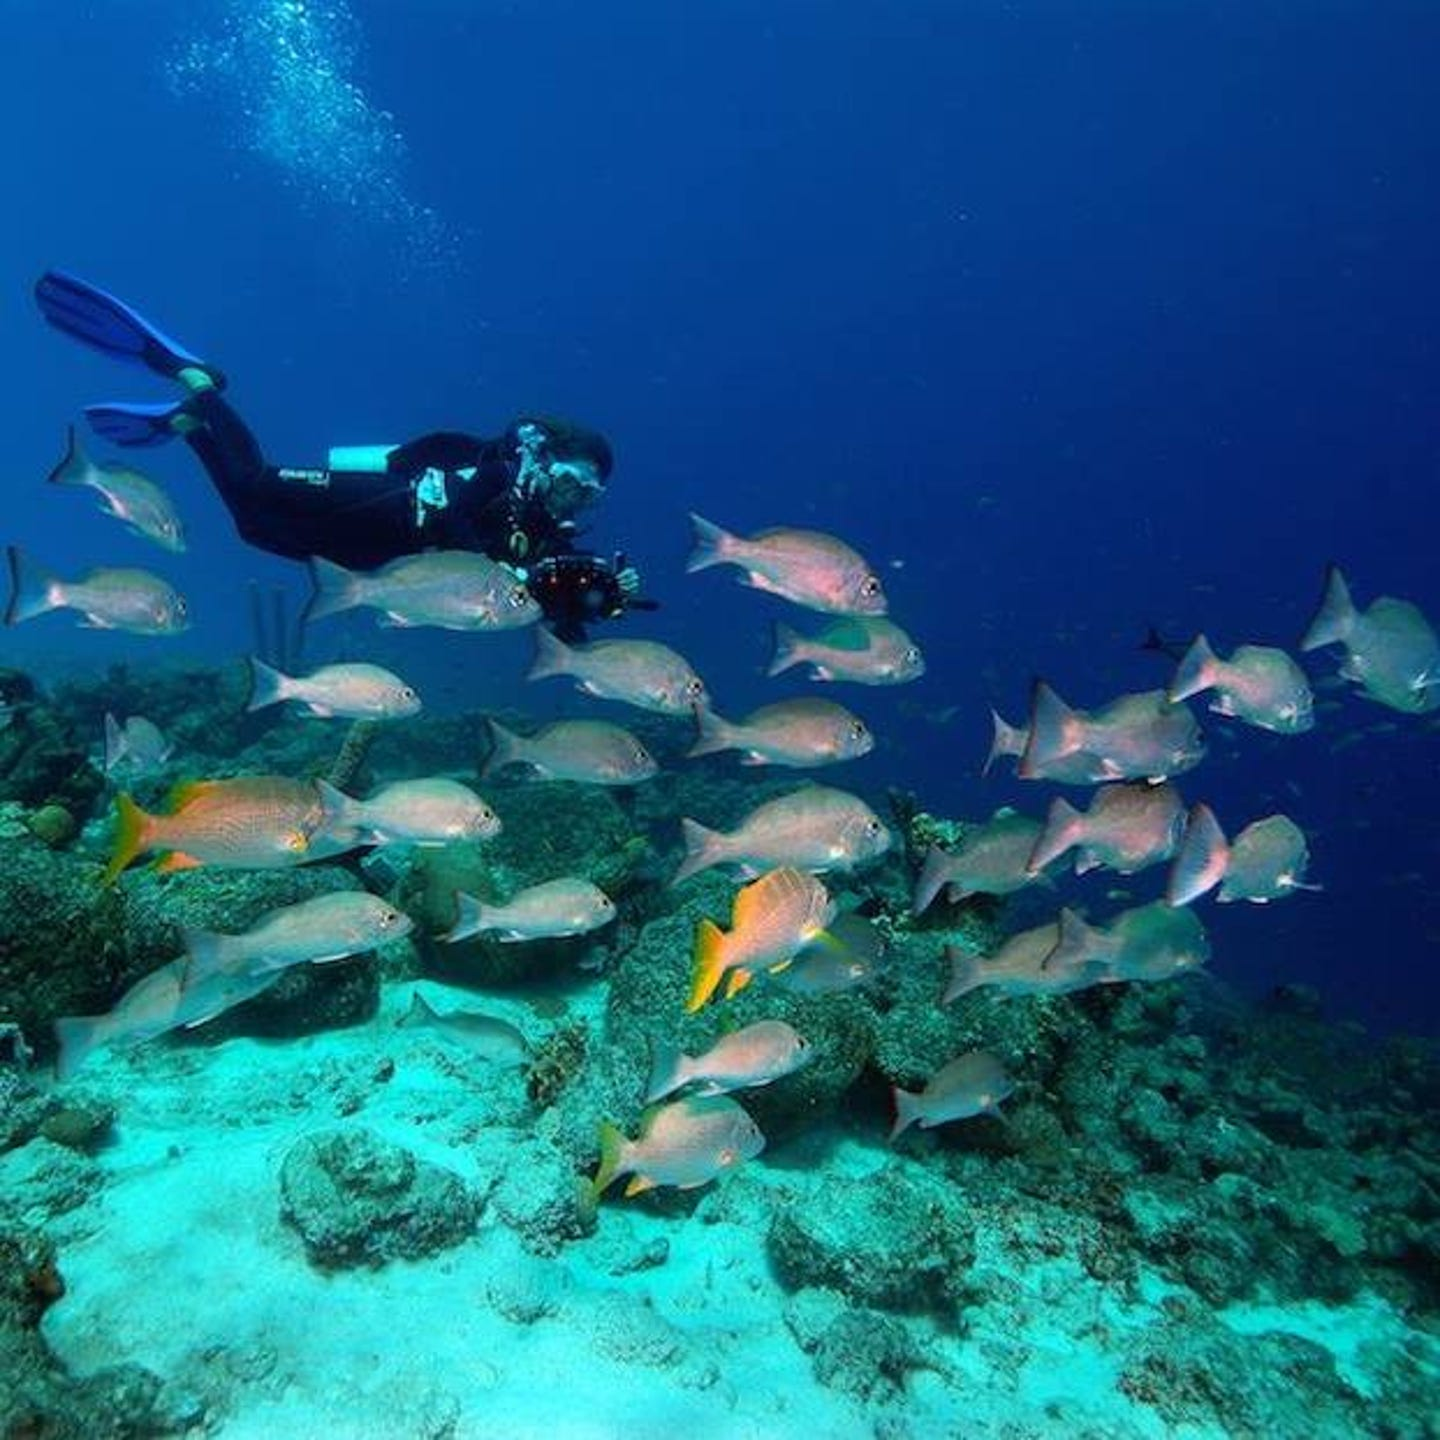 Island-wide, snorkelers can wade into the reef from the shoreline in front of many of the hotels to see a fireworks display of underwater color.